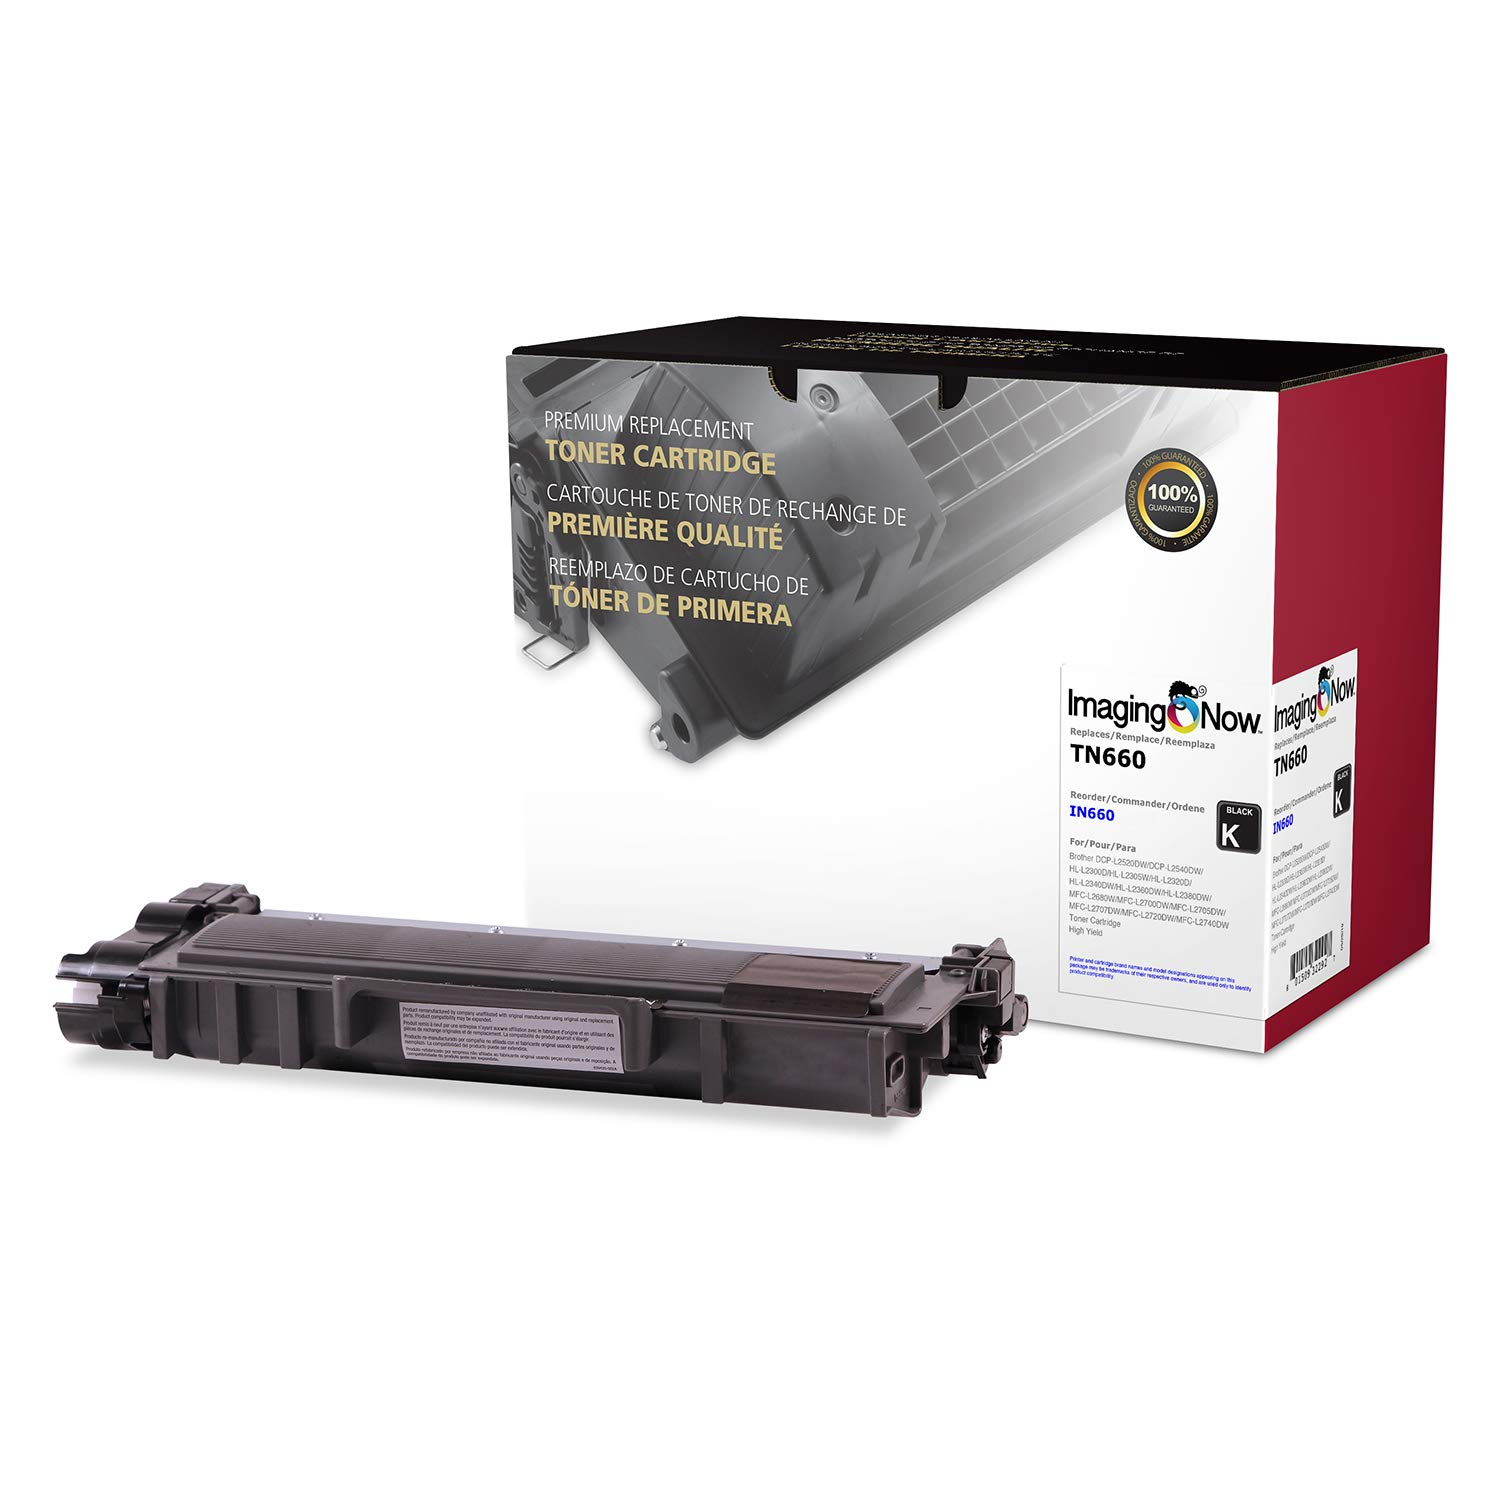 ImagingNow – Eco-Friendly OEM Toner Compatible with Brother TN-660 – Premium Cartridge Replacement